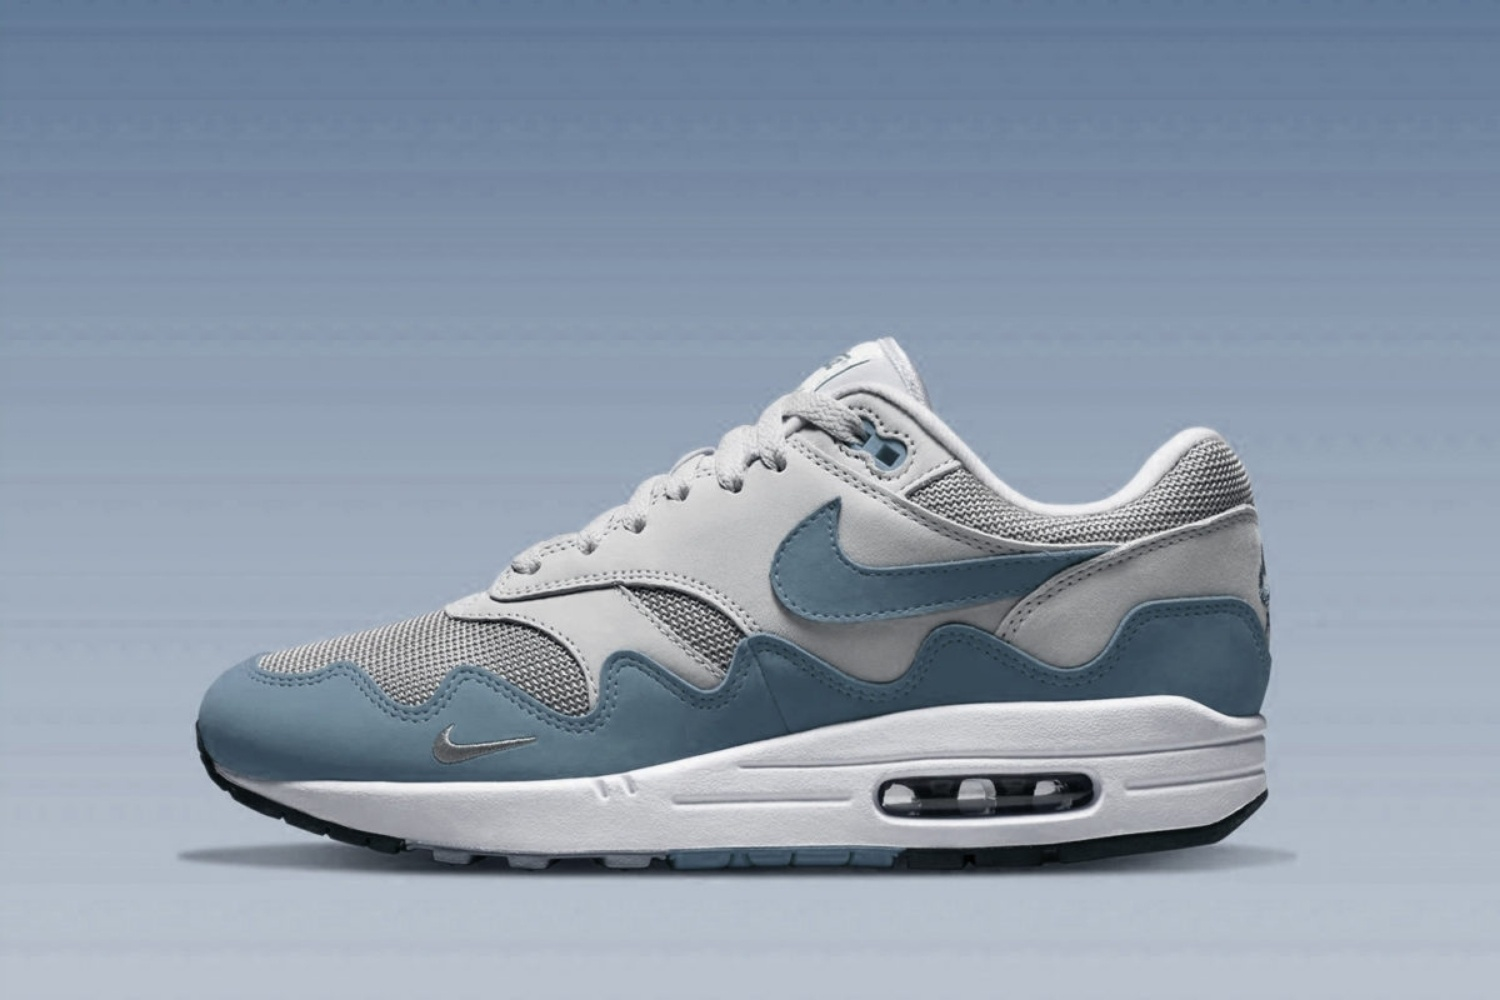 First images of the Patta x Nike Air Max 1 The Wave - Noise Aqua